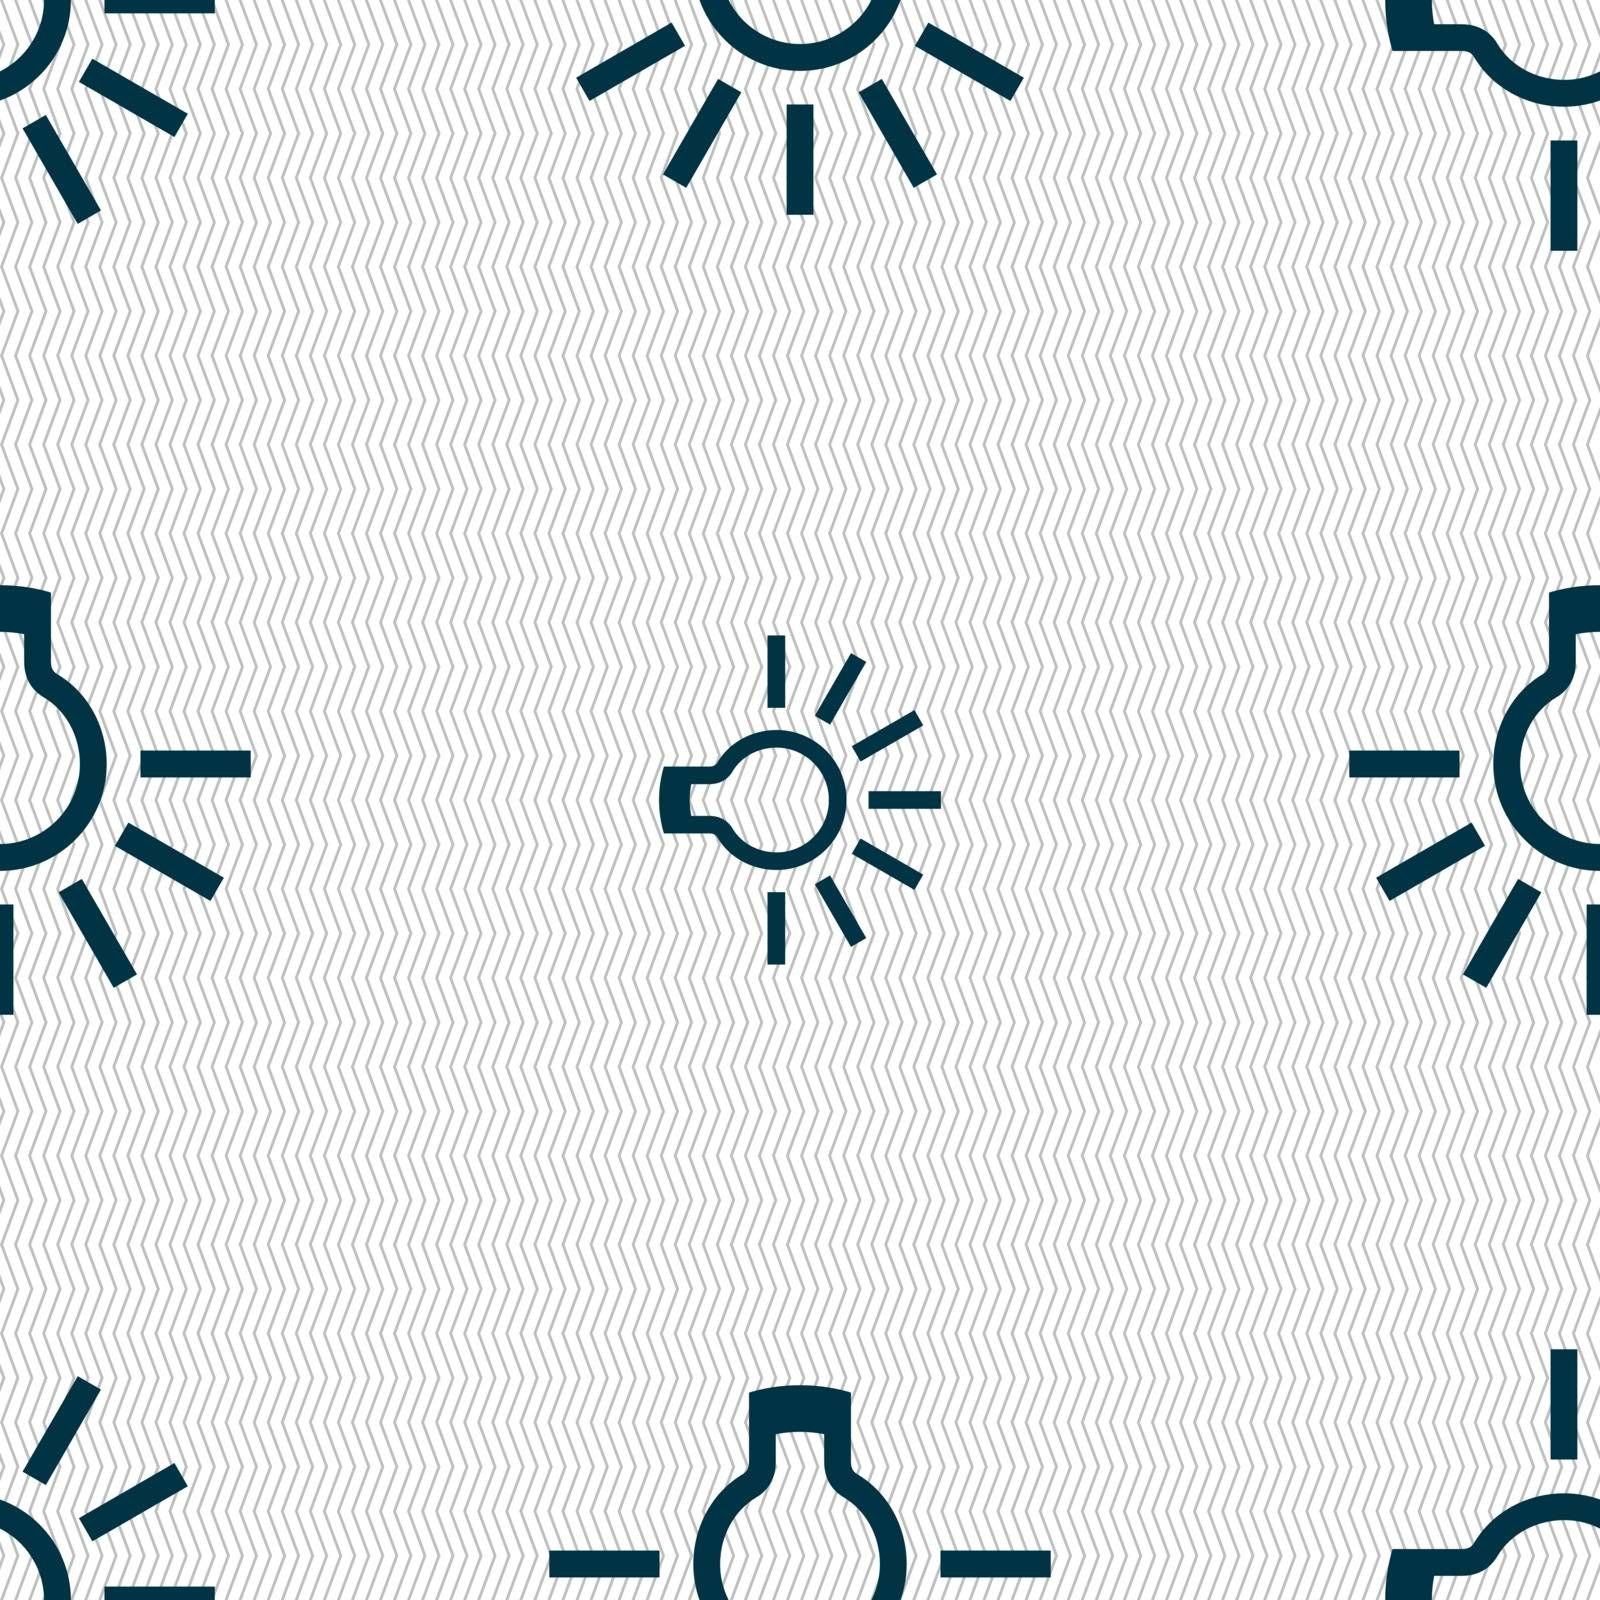 light bulb icon sign. Seamless pattern with geometric texture. Vector illustration